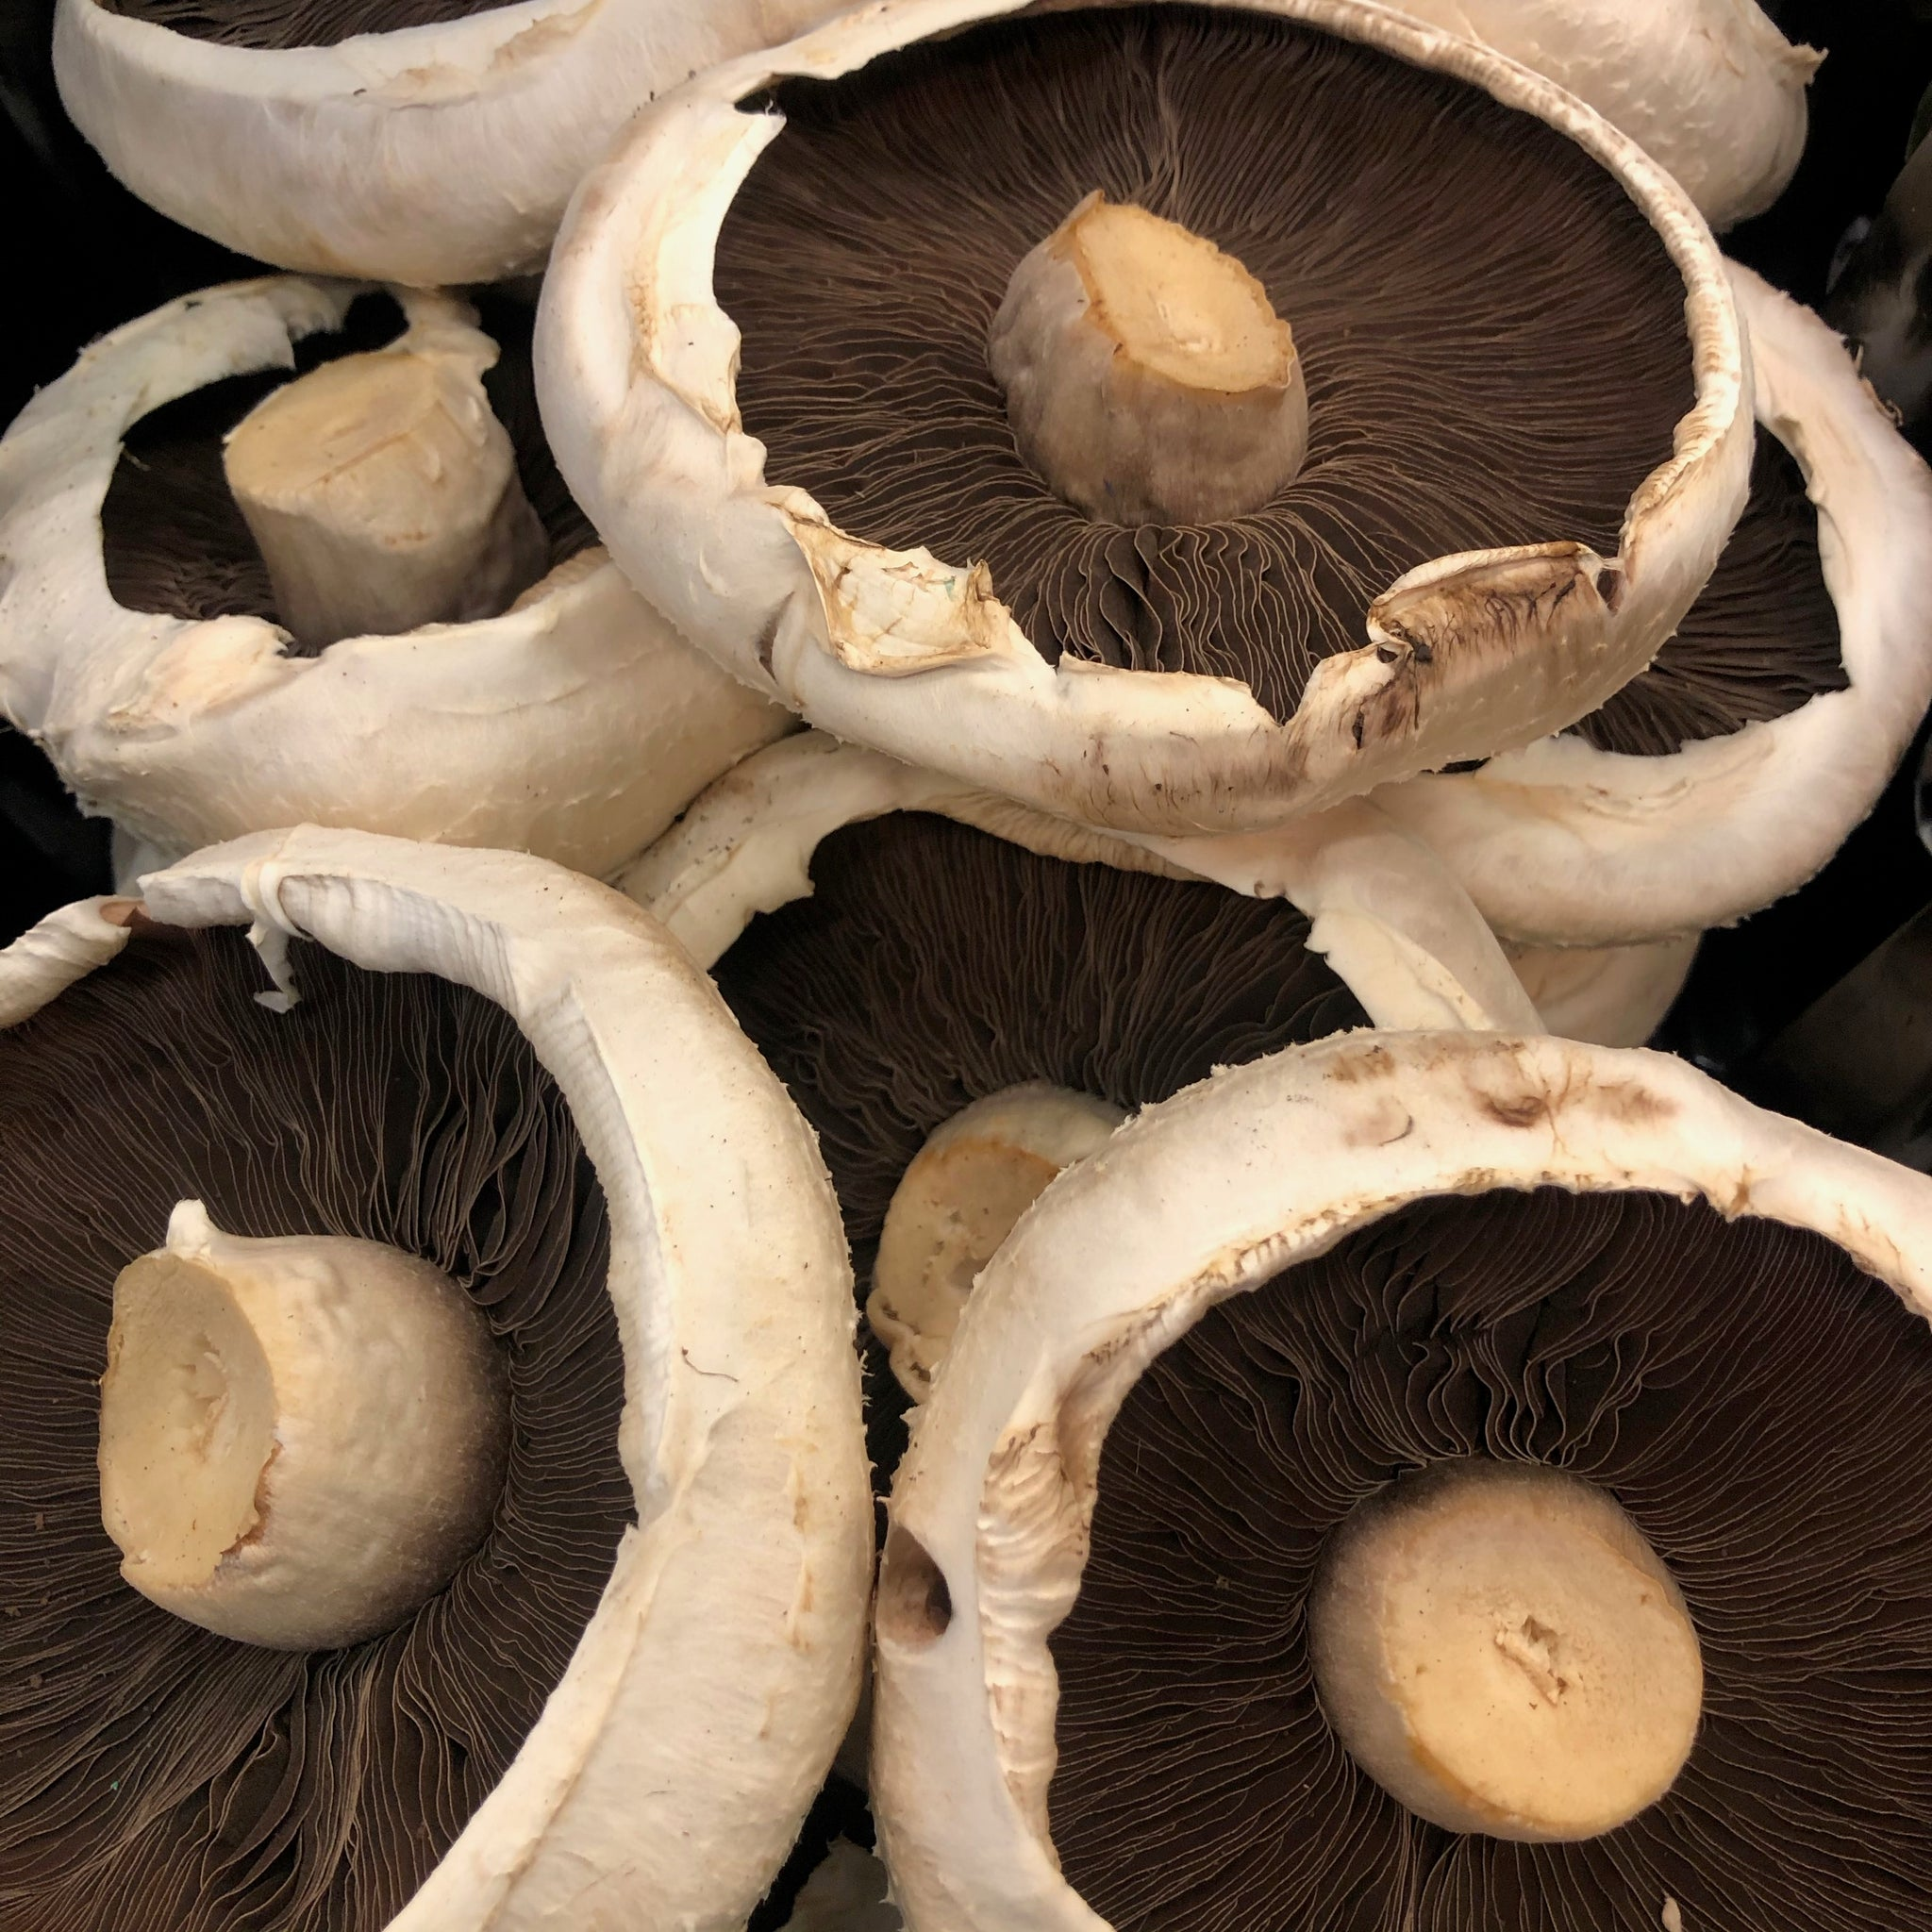 Flat mushrooms 250g - HGFD Produce